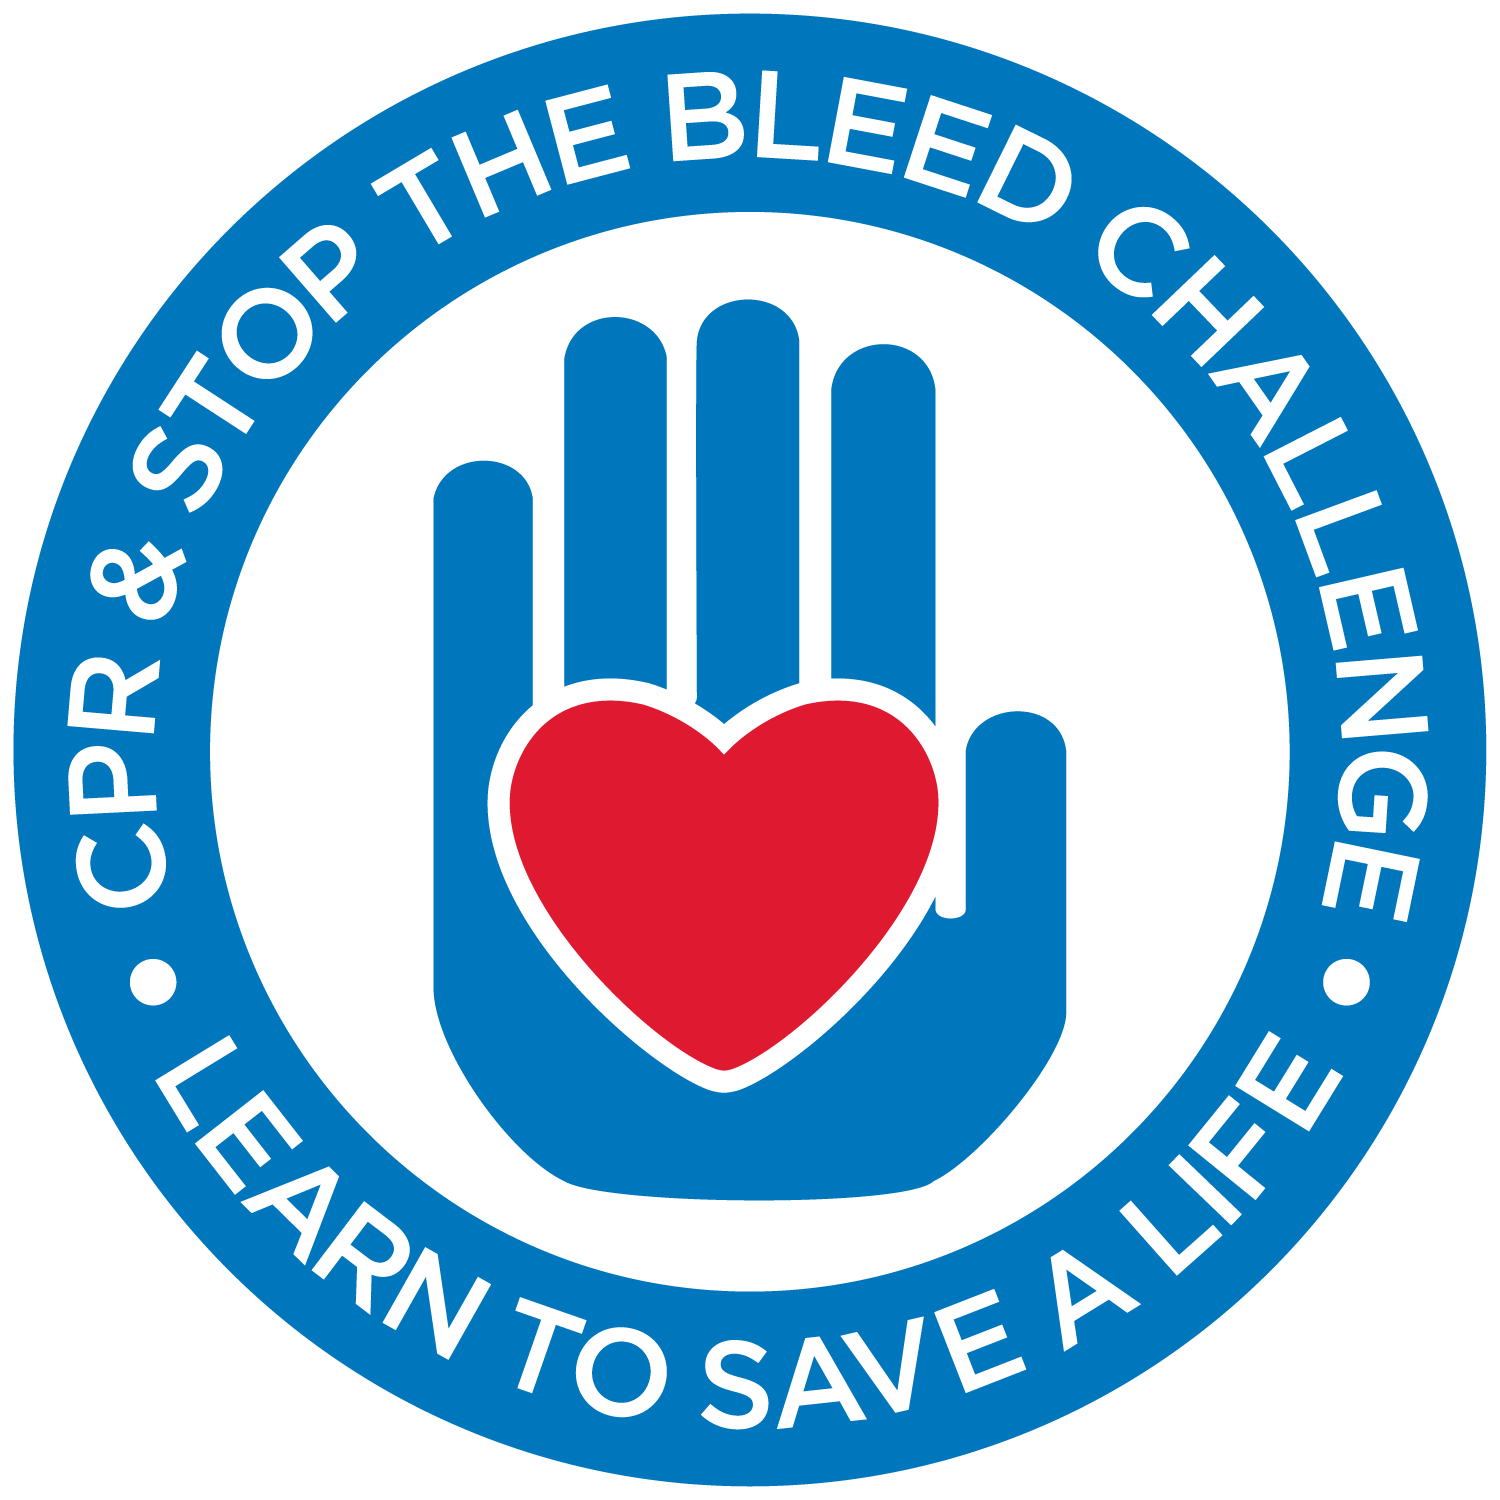 202002-9042-GMR-CPRStoptheBleed_Logo_RGB.png